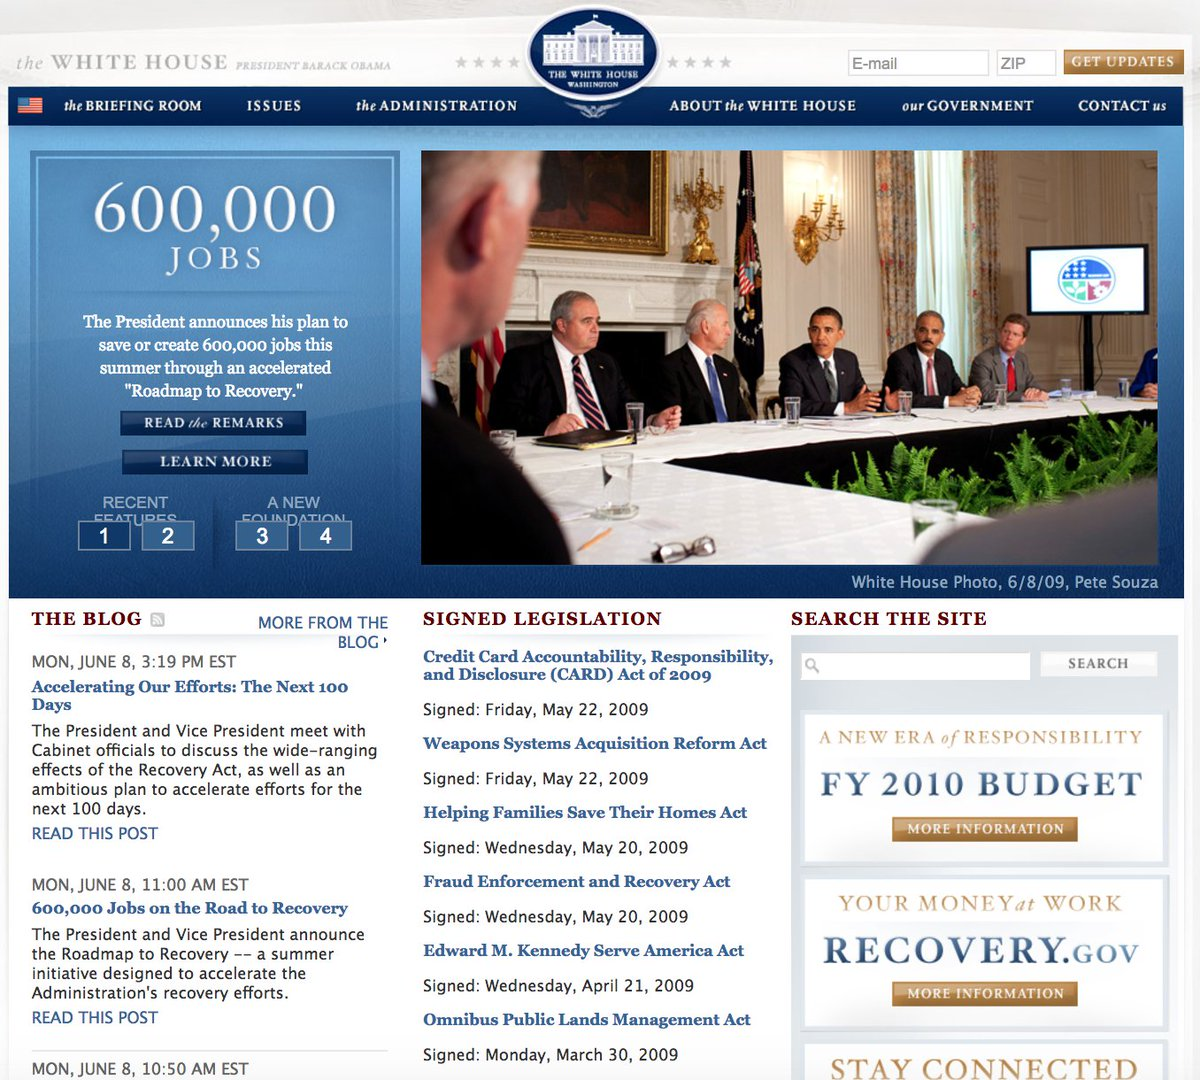 Dan Diamond On Twitter The White House Homepage  Days After - Us zip code white house